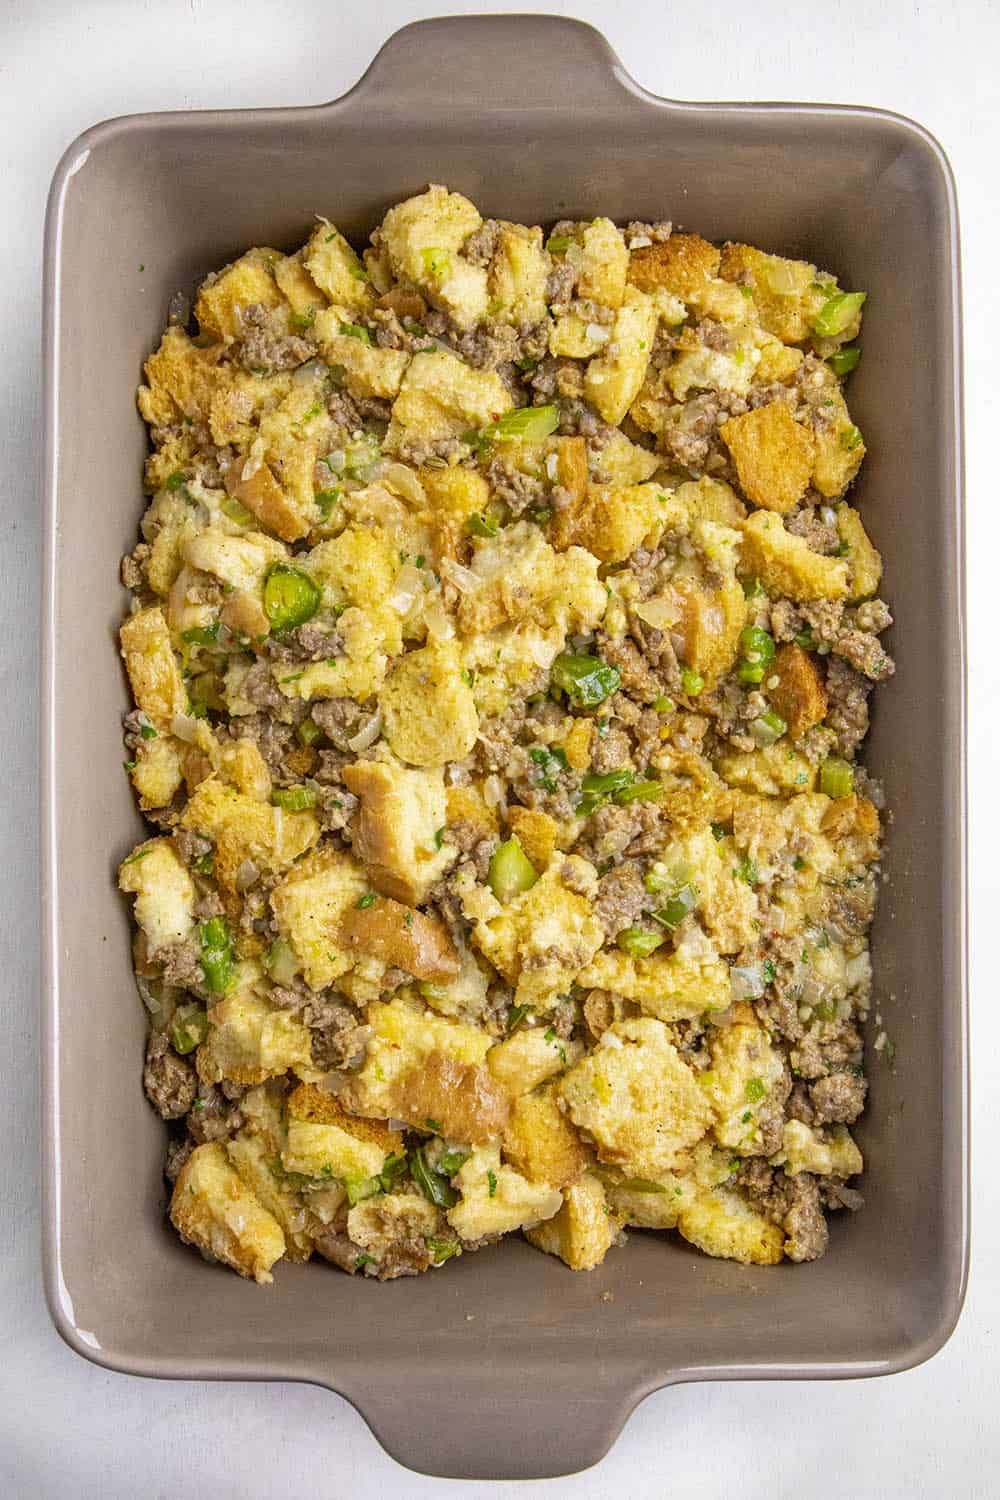 Sausage Stuffing ready for the oven